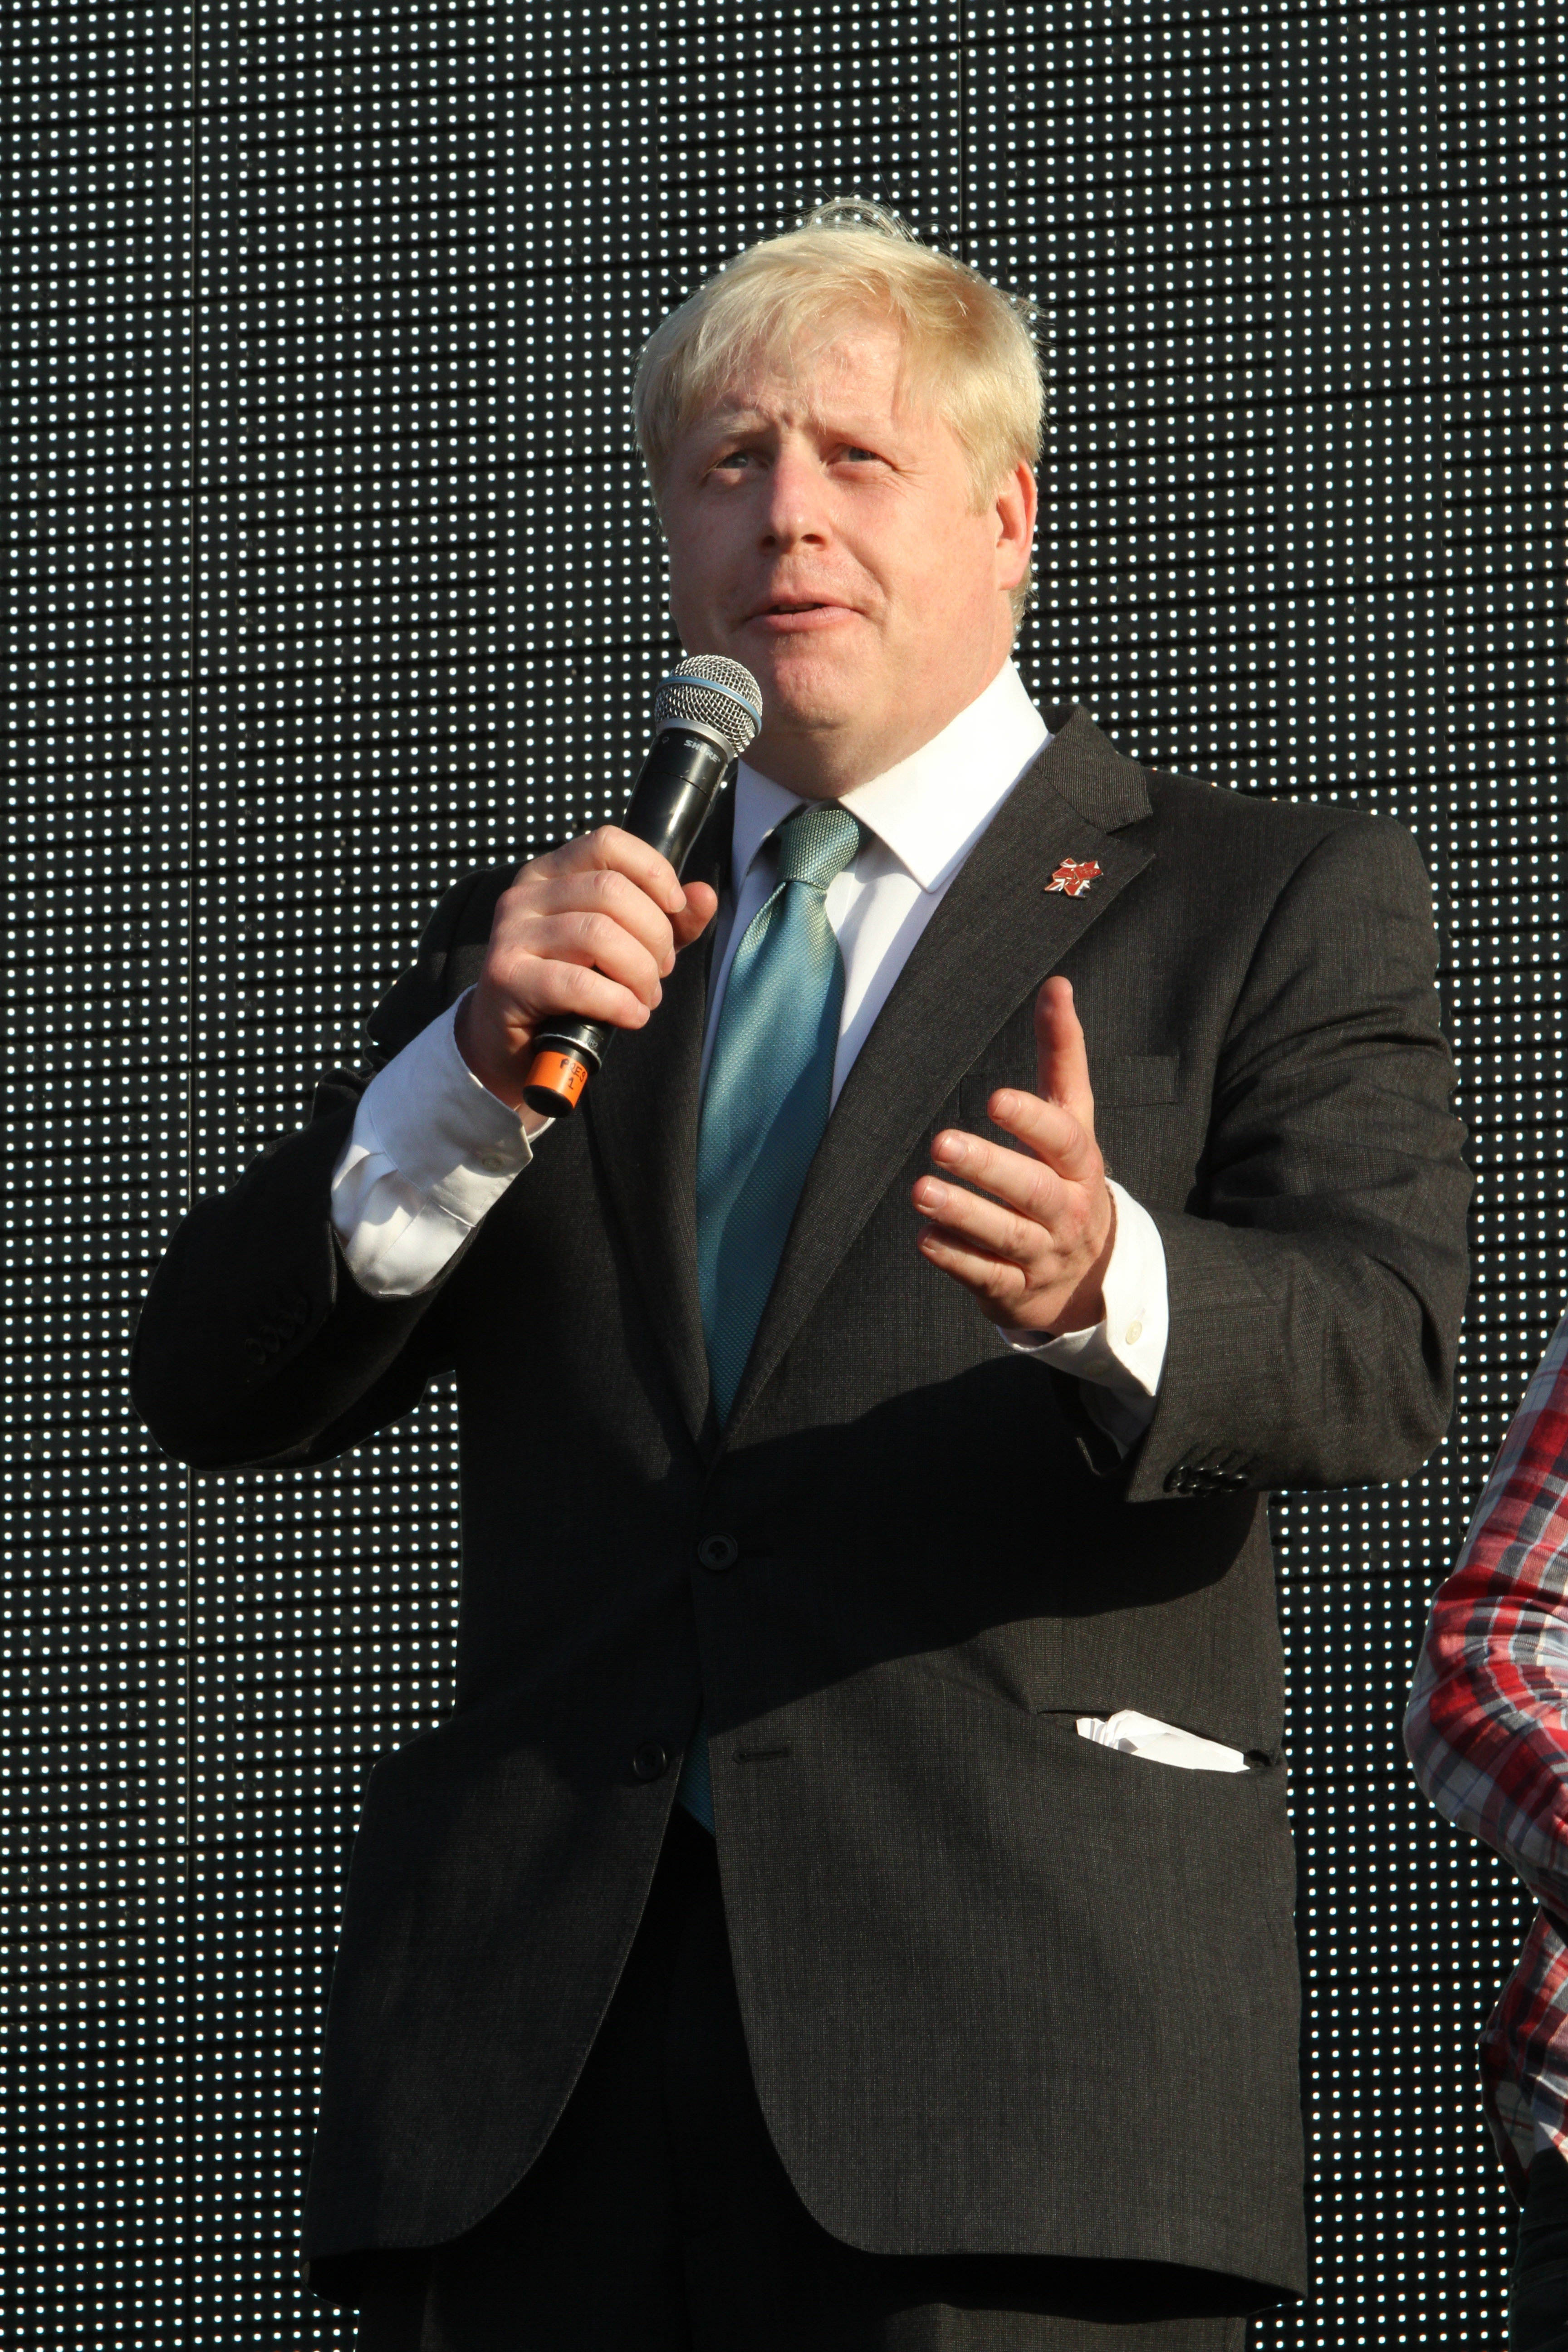 (EDITOR�S NOTE: Image Archived 26/07/2012) Boris Johnson at the Coca Cola Olympic Torch Relay Finale - the final torchbearer arrives to light the cauldron - at Hyde Park, London. Prime Minister Boris Johnson MP has tested positive for coronavirus, Downing Street has announced that Mr Johnson has mild symptoms and will self-isolate in Downing Street. He will still be in charge of the government's handling of the crisis, the statement added. (Photo by Keith Mayhew / SOPA Images/Sipa USA)